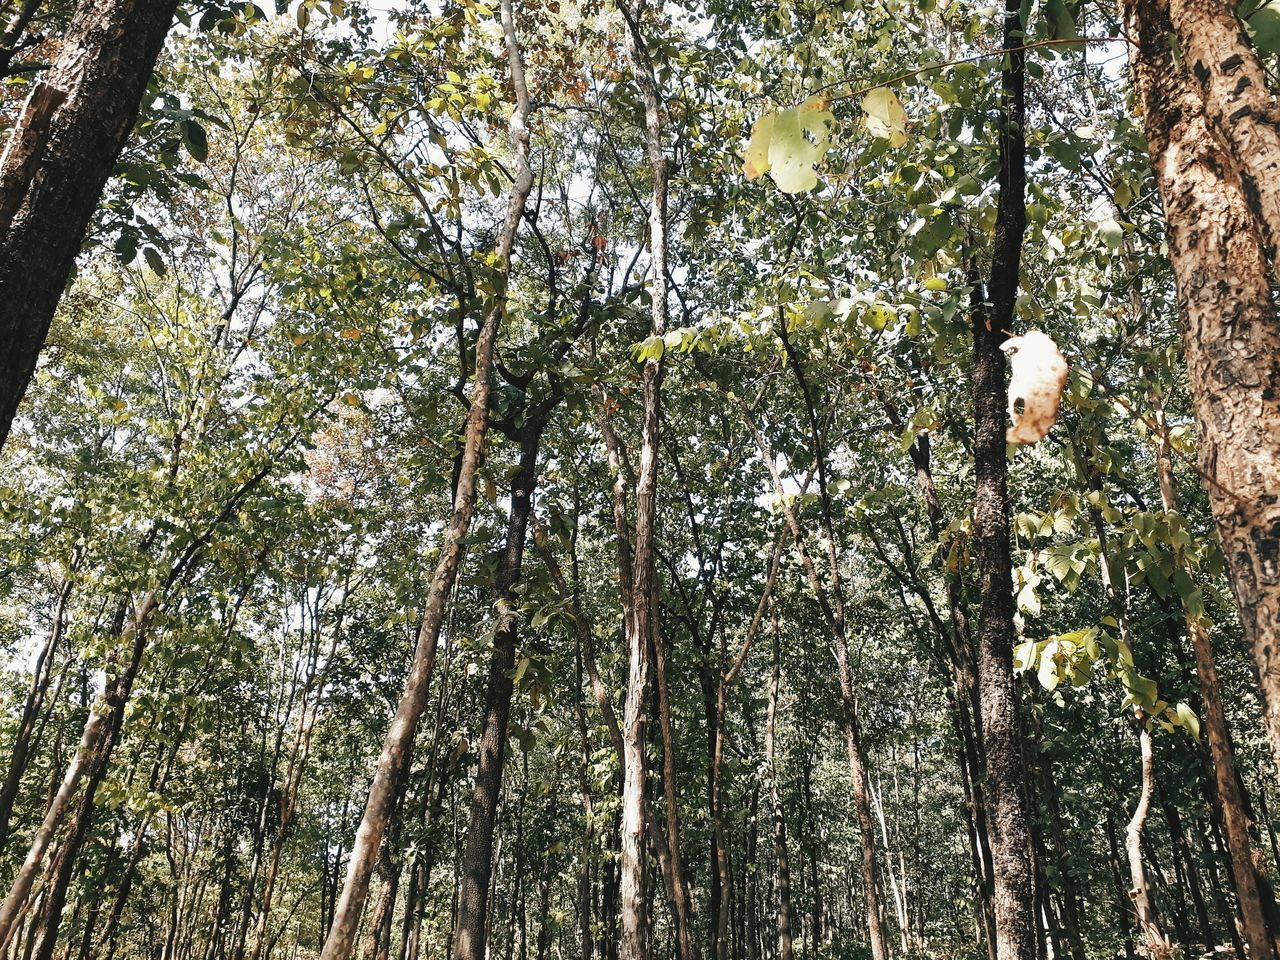 Low Angle View Tree Backgrounds Full Frame Growth Nature No People Beauty In Nature Sky Outdoors Scenics Day Bamboo Grove